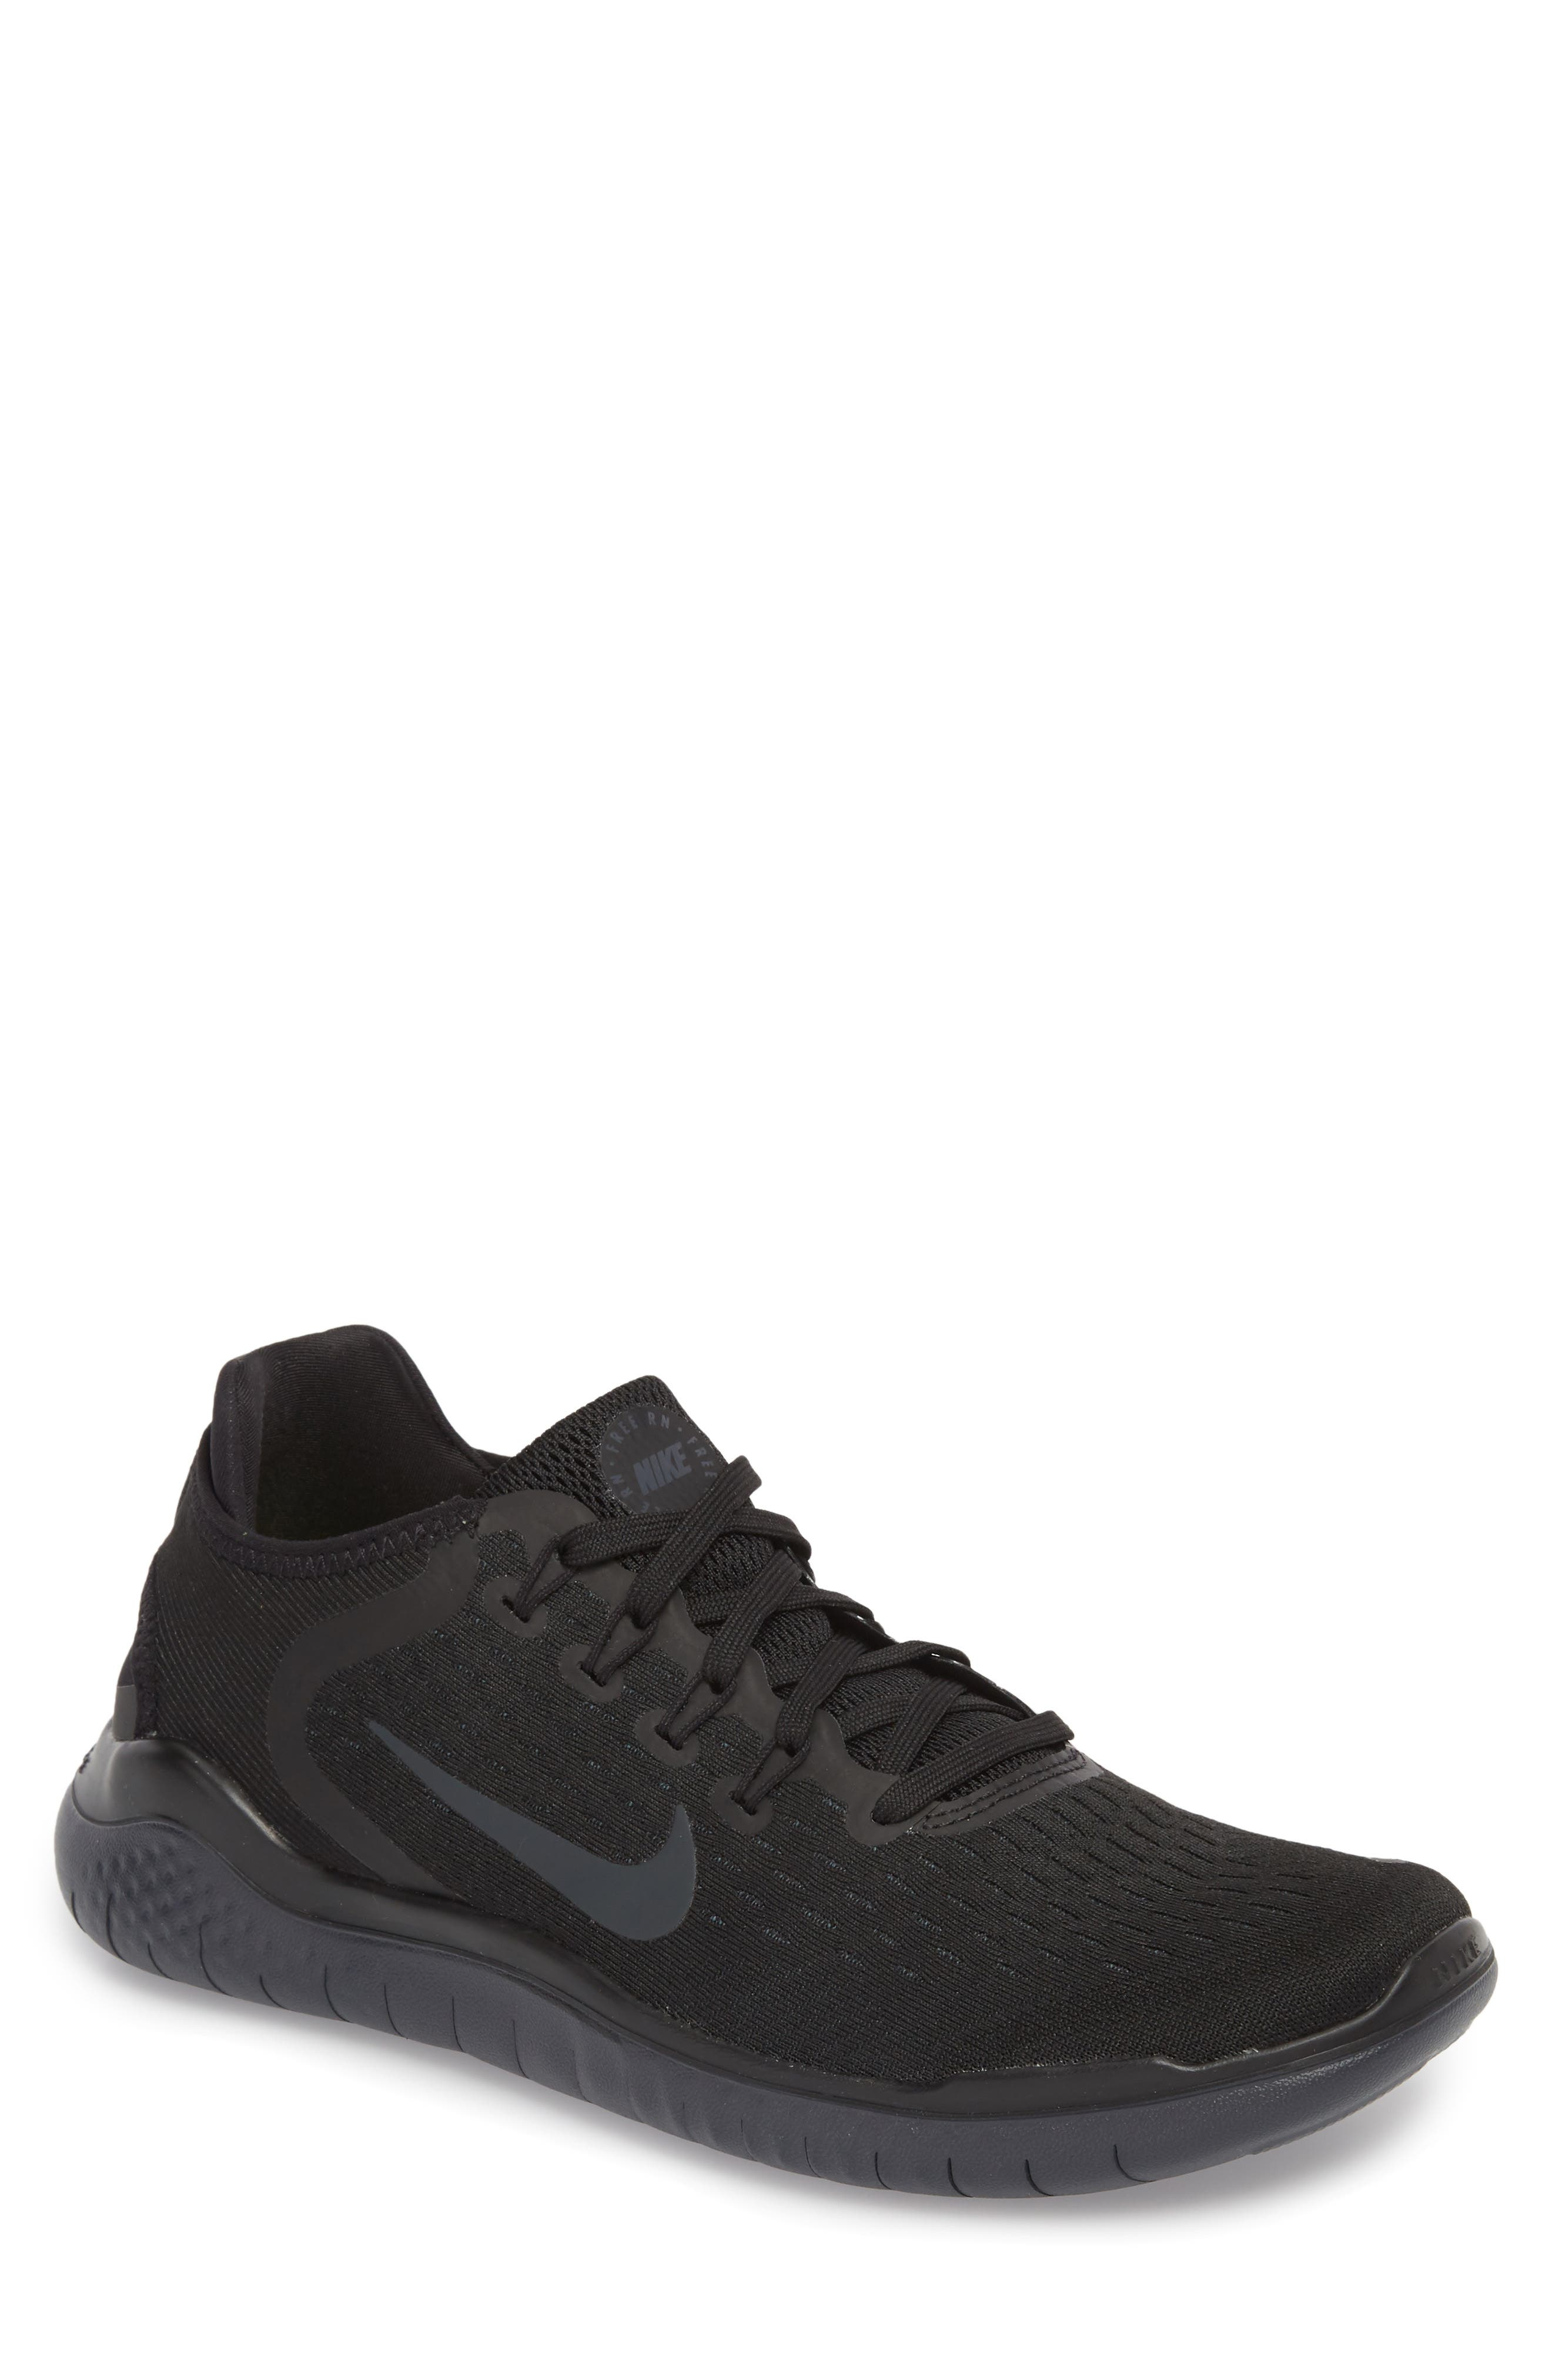 Free RN 2018 Running Shoe,                         Main,                         color, BLACK/ ANTHRACITE